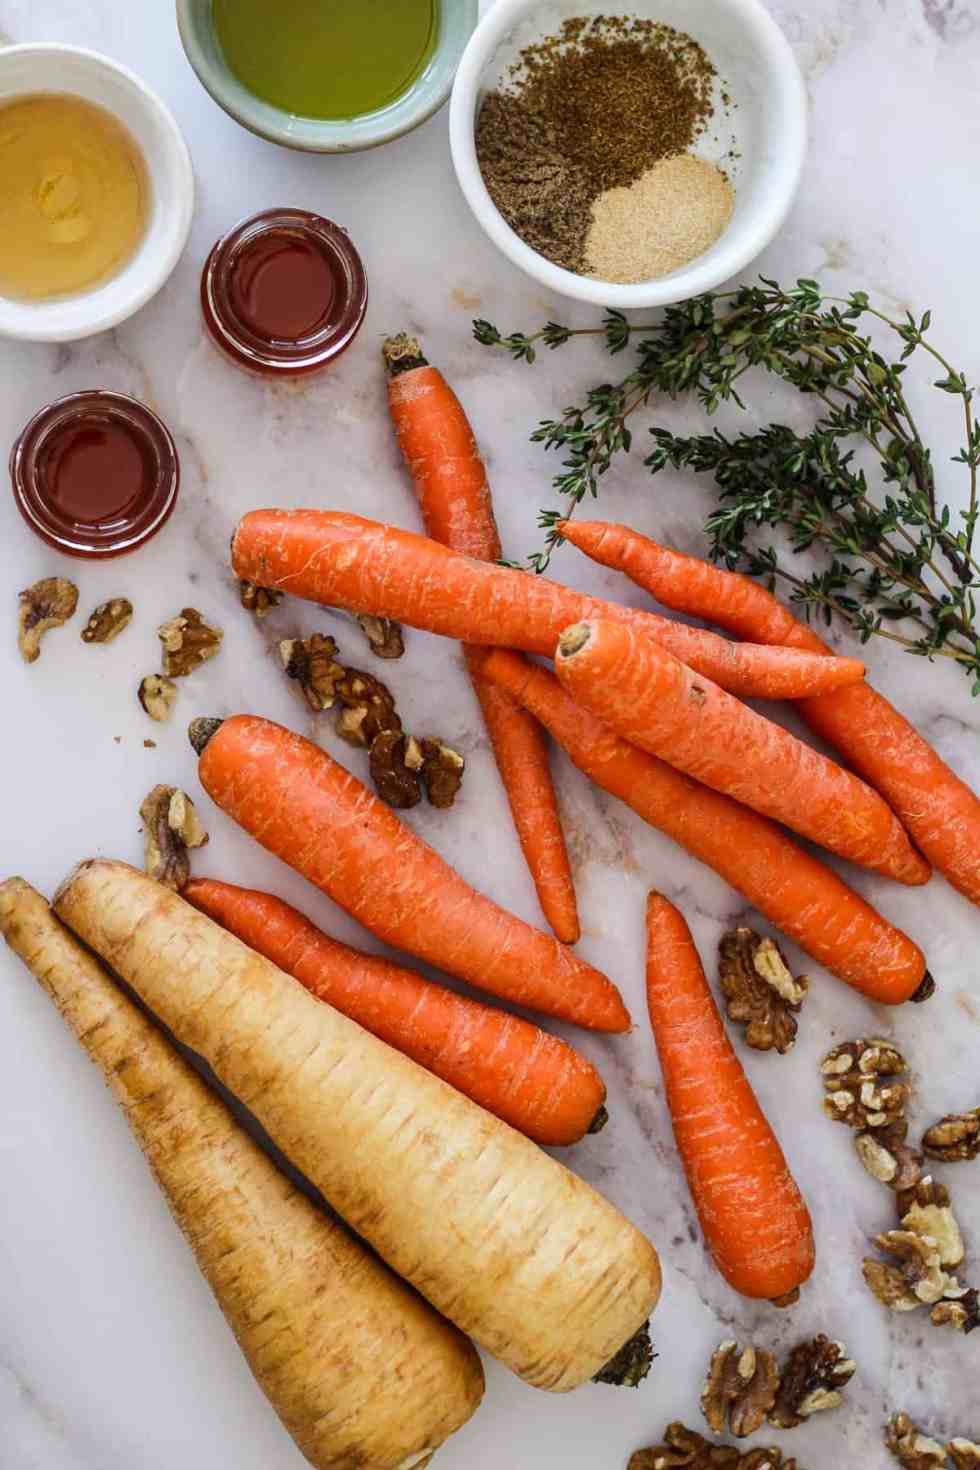 Parsnips, carrots, honey, walnuts, fresh thyme, and dry spices on white marble.